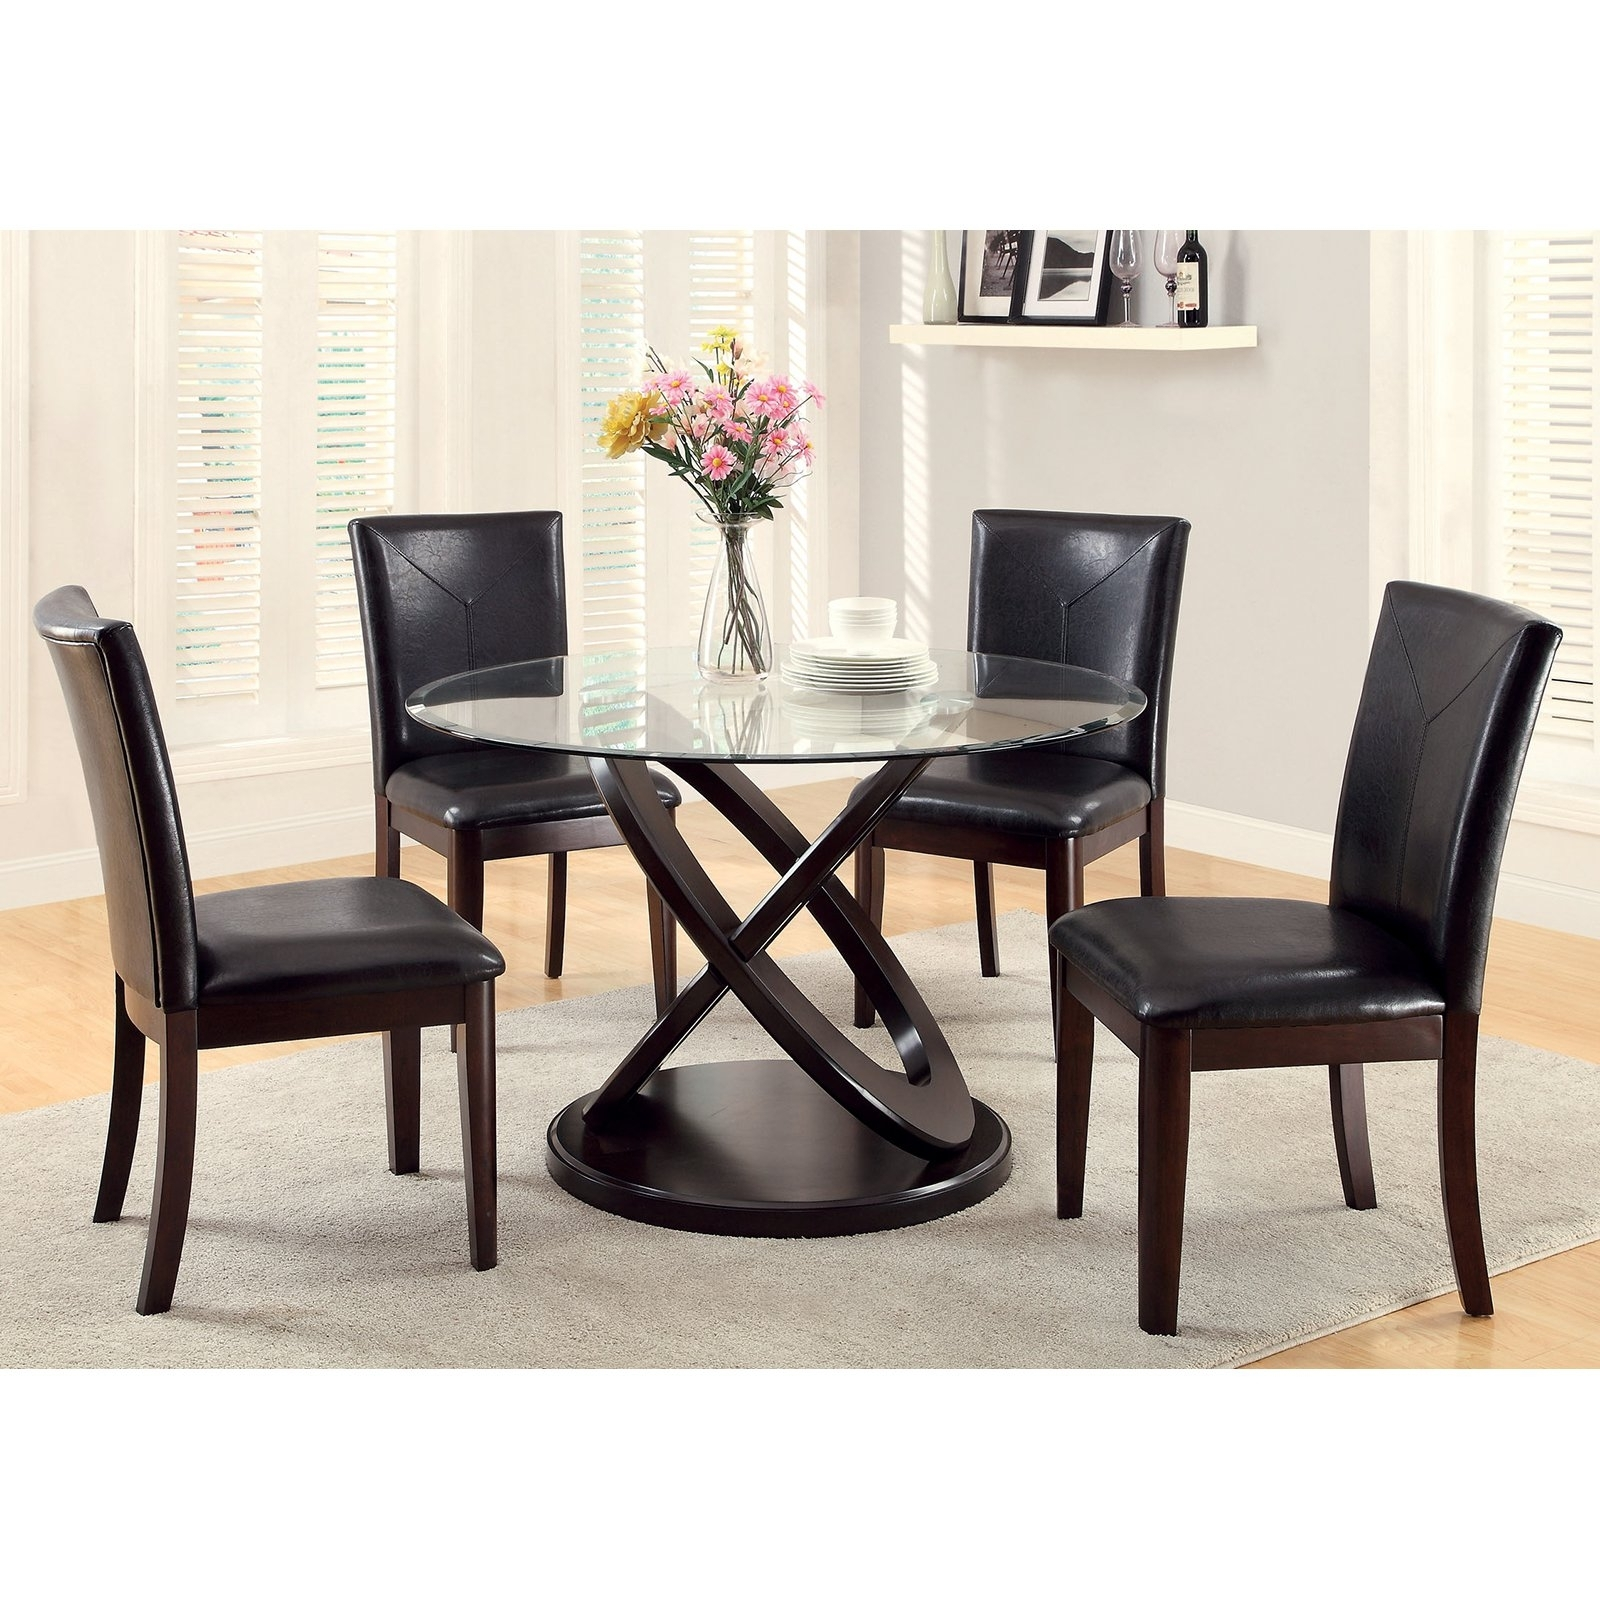 Latest Round Black Glass Dining Tables And Chairs Pertaining To Glamorous Black Glass Round Dining Table And Chairs For Stowaway (View 13 of 25)